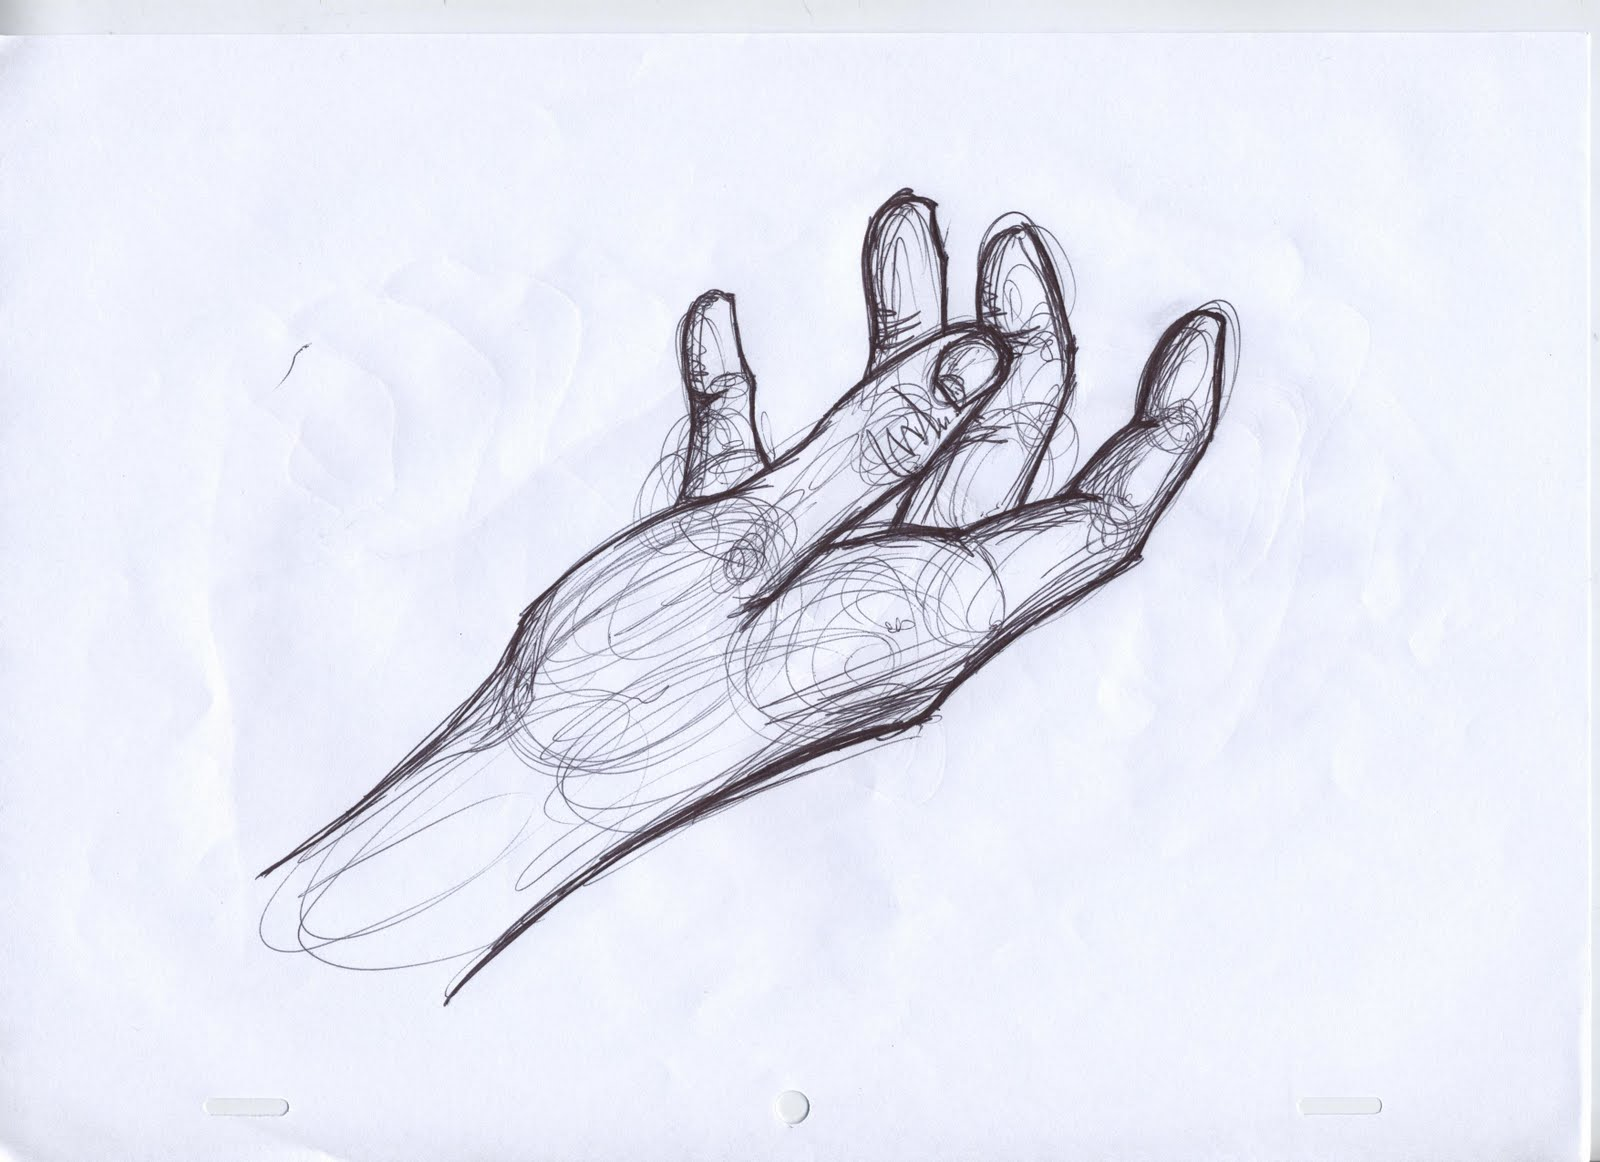 How To Draw Hands Holding Easy